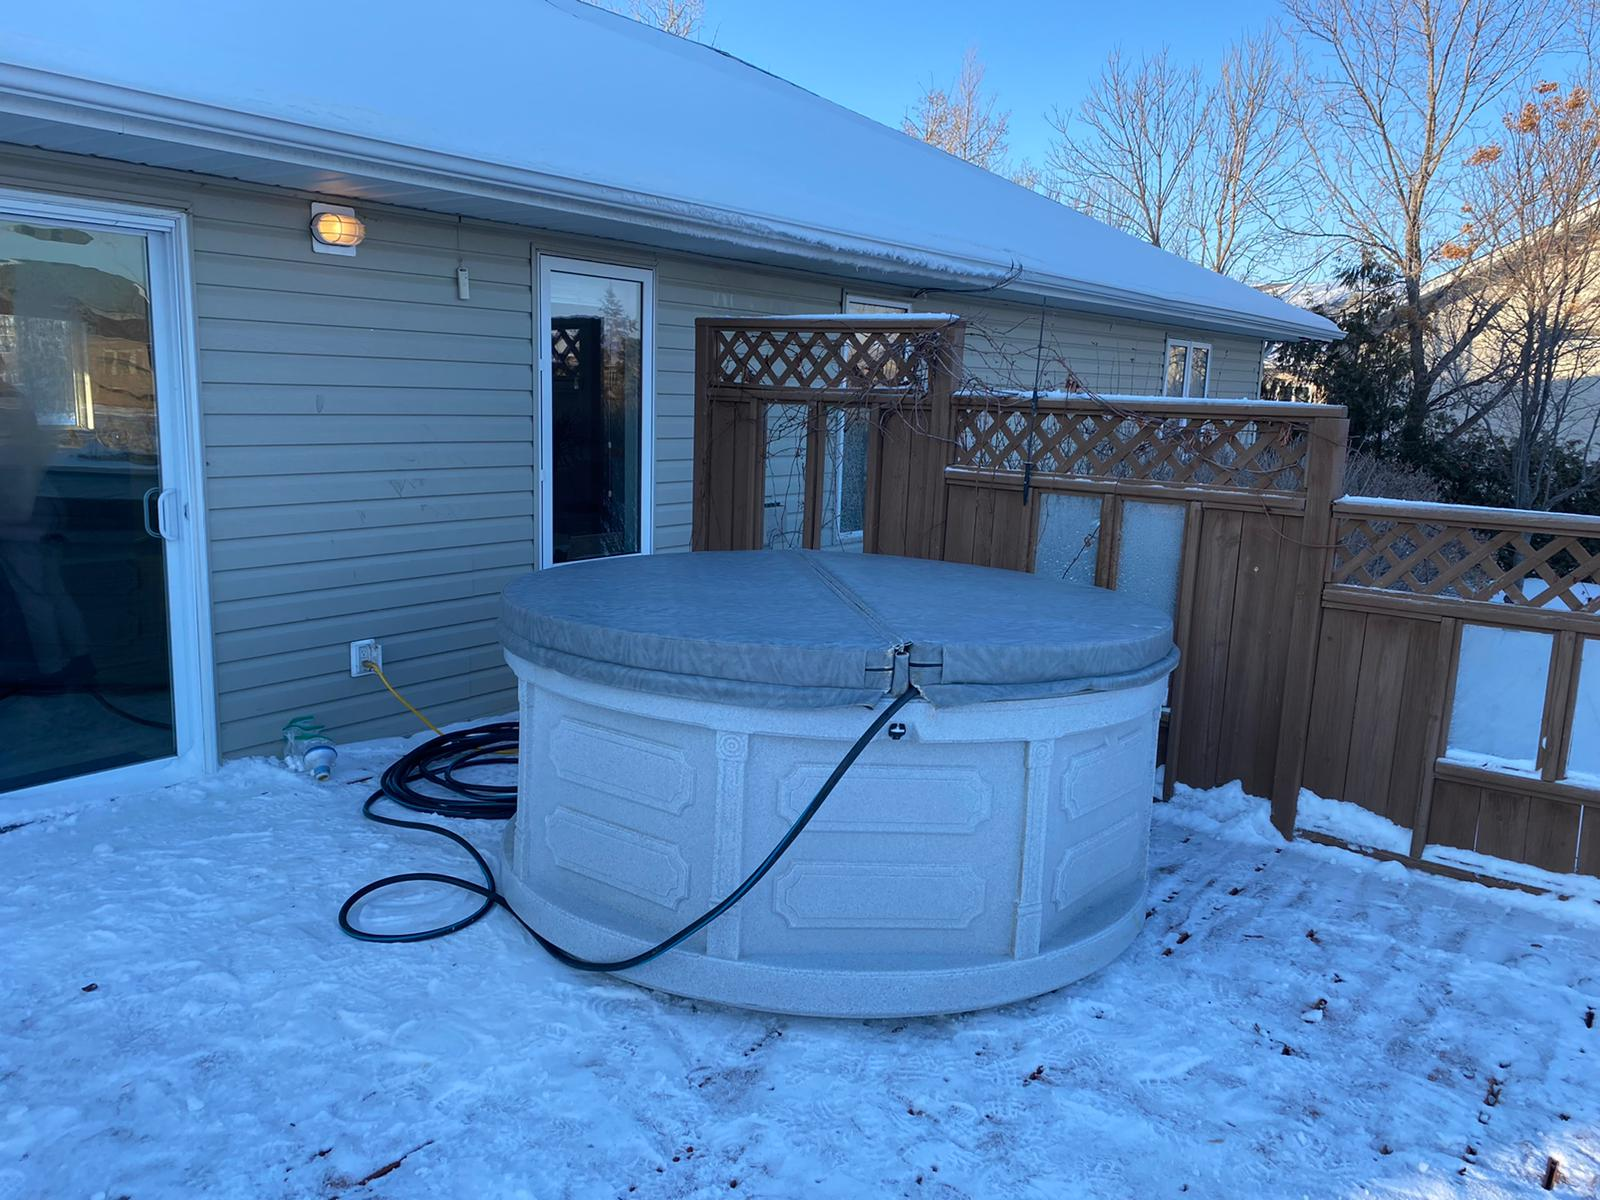 Rent-a-hot-tub-Selkirk-Manitoba-The-Funky-Keg